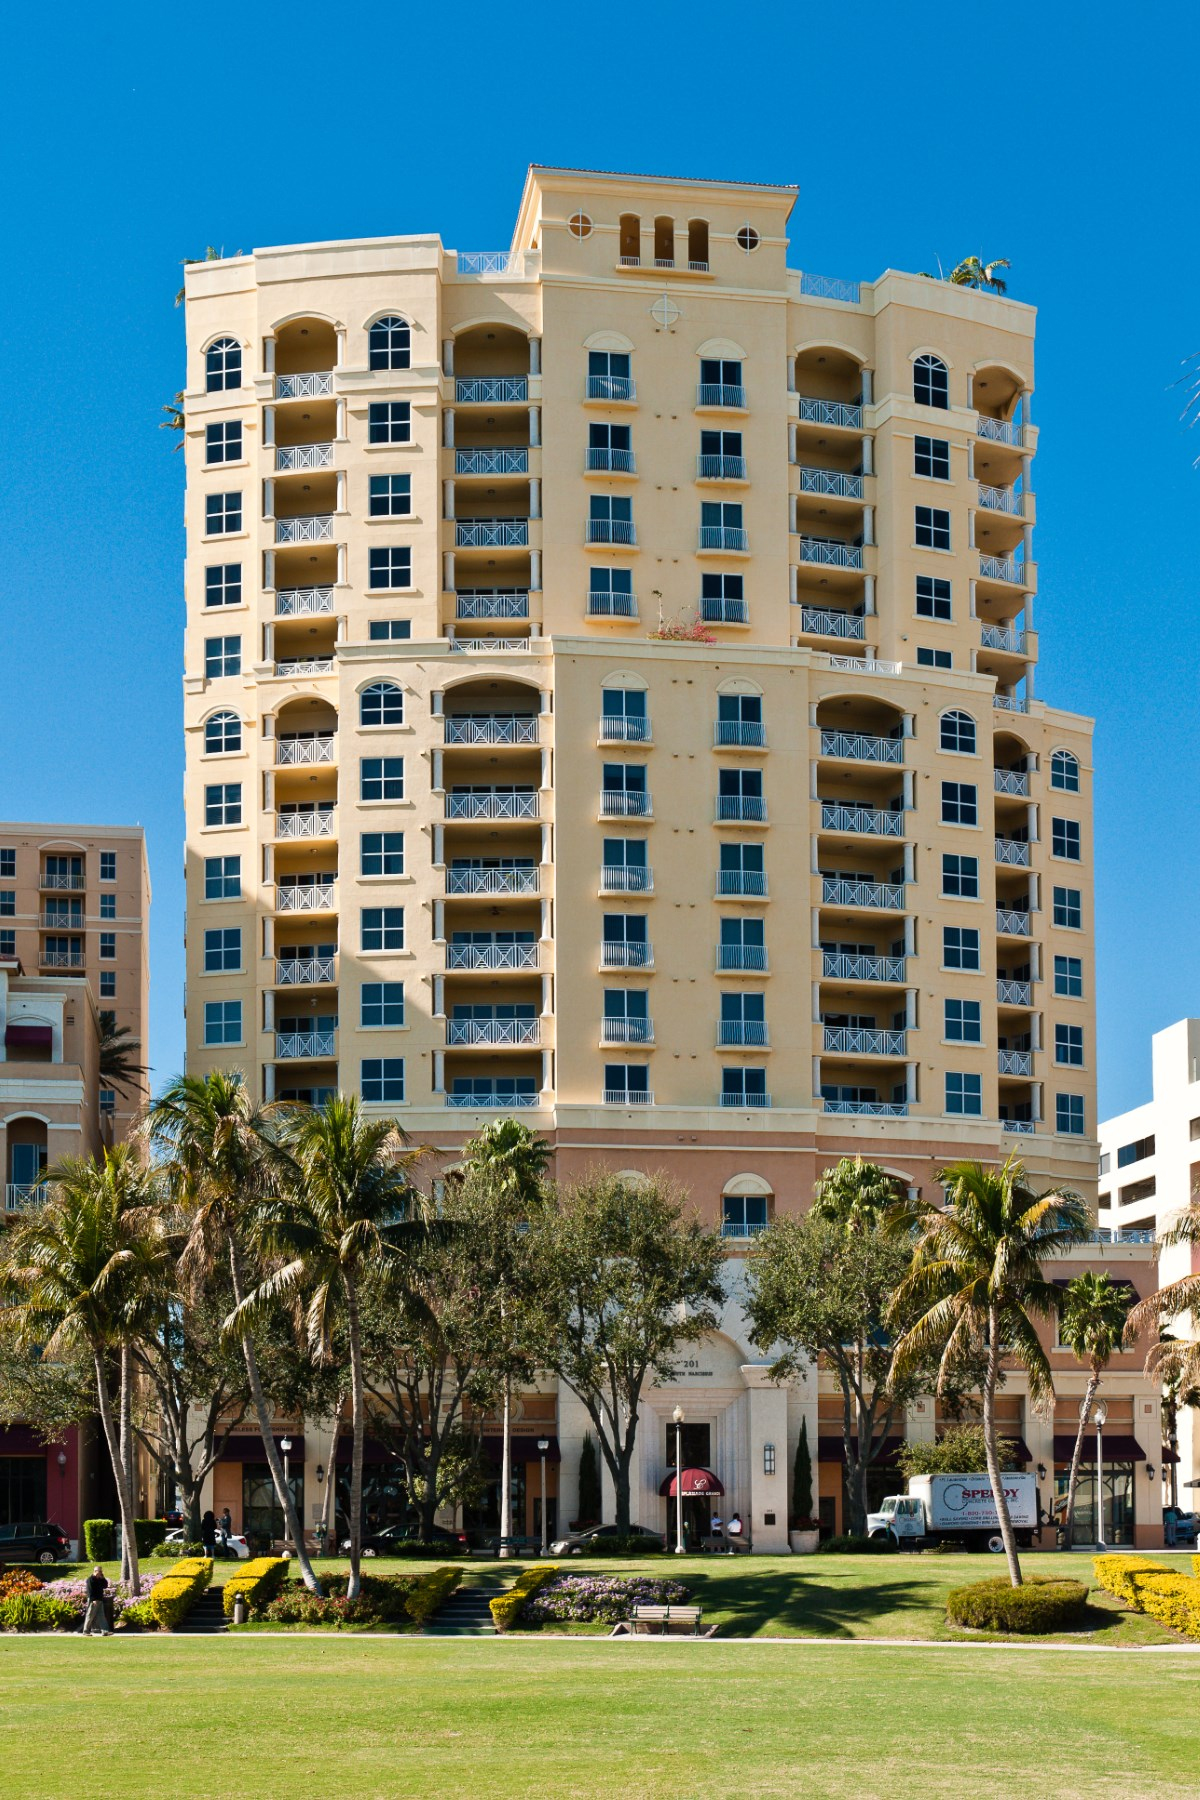 콘도미니엄 용 매매 에 Penthouse One at Esplanade Grande Condo 201 S Narcissus Ave Ph-1 West Palm Beach, 플로리다 33401 미국